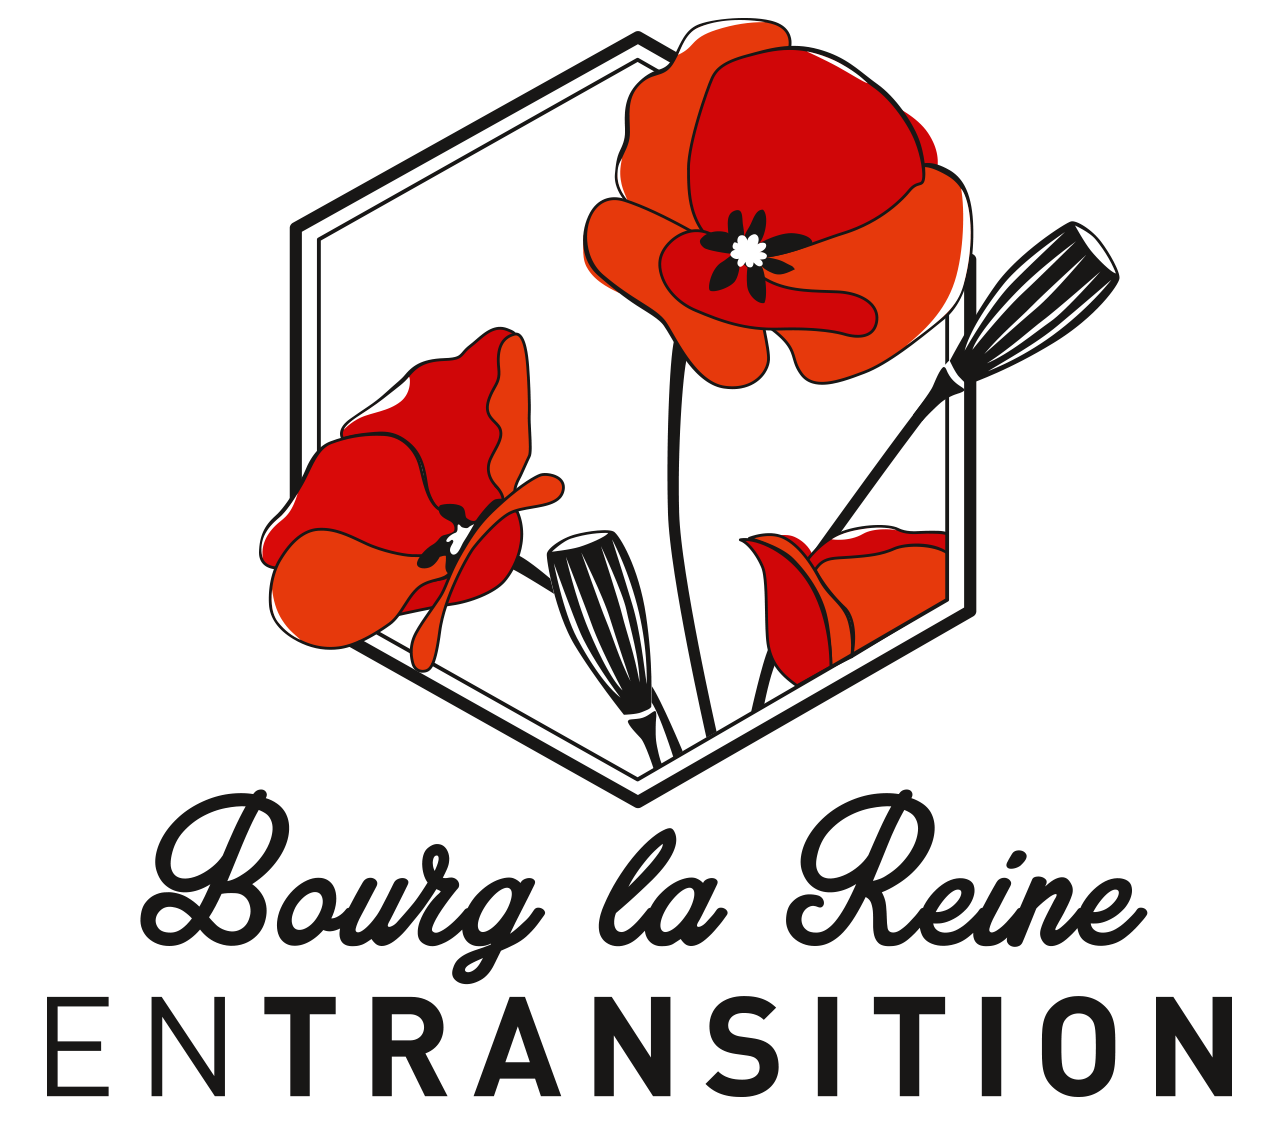 Bourg-la-Reine en Transition